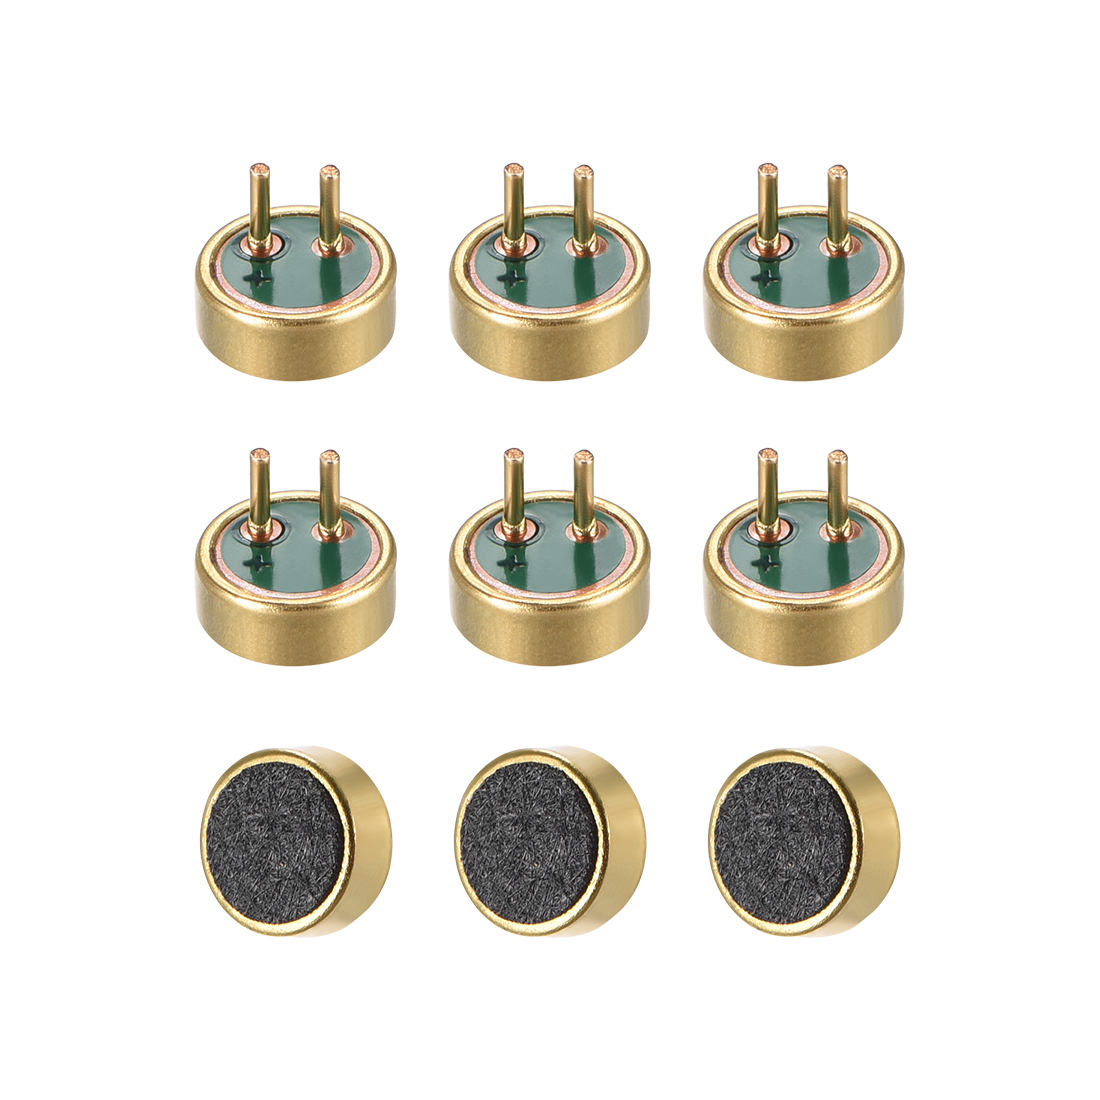 4015 42dB Electret Microphone Pickup Condenser MIC with Pins 9 Pcs